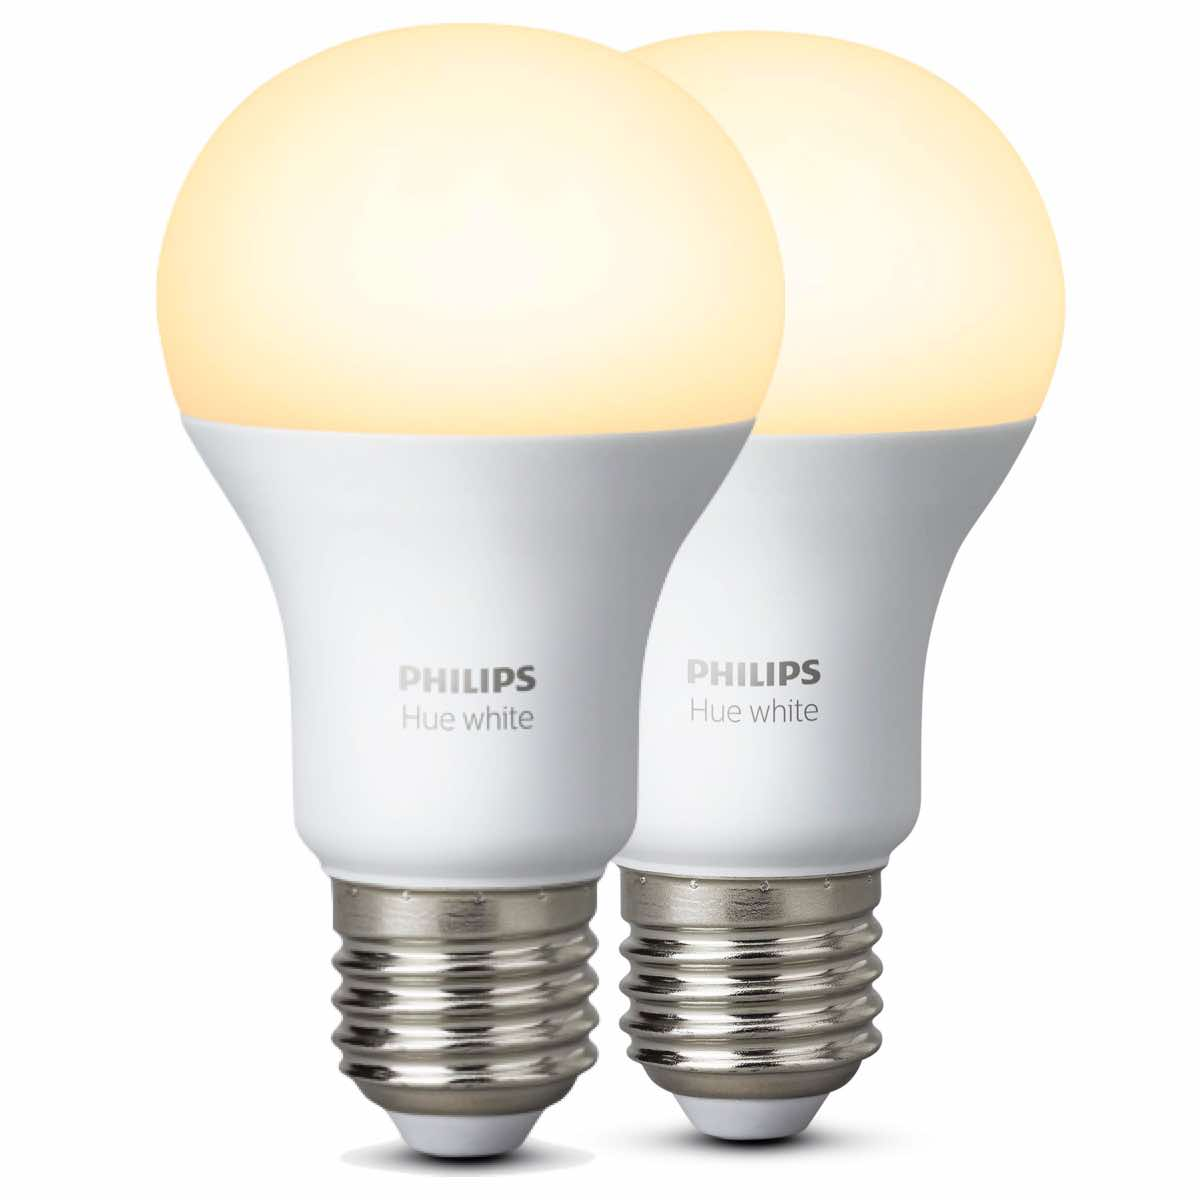 https://www.purelifestyle.be/media/producttemplate//Philips-hue-white-duoset-losse-lampen-E27.1512465914.jpg